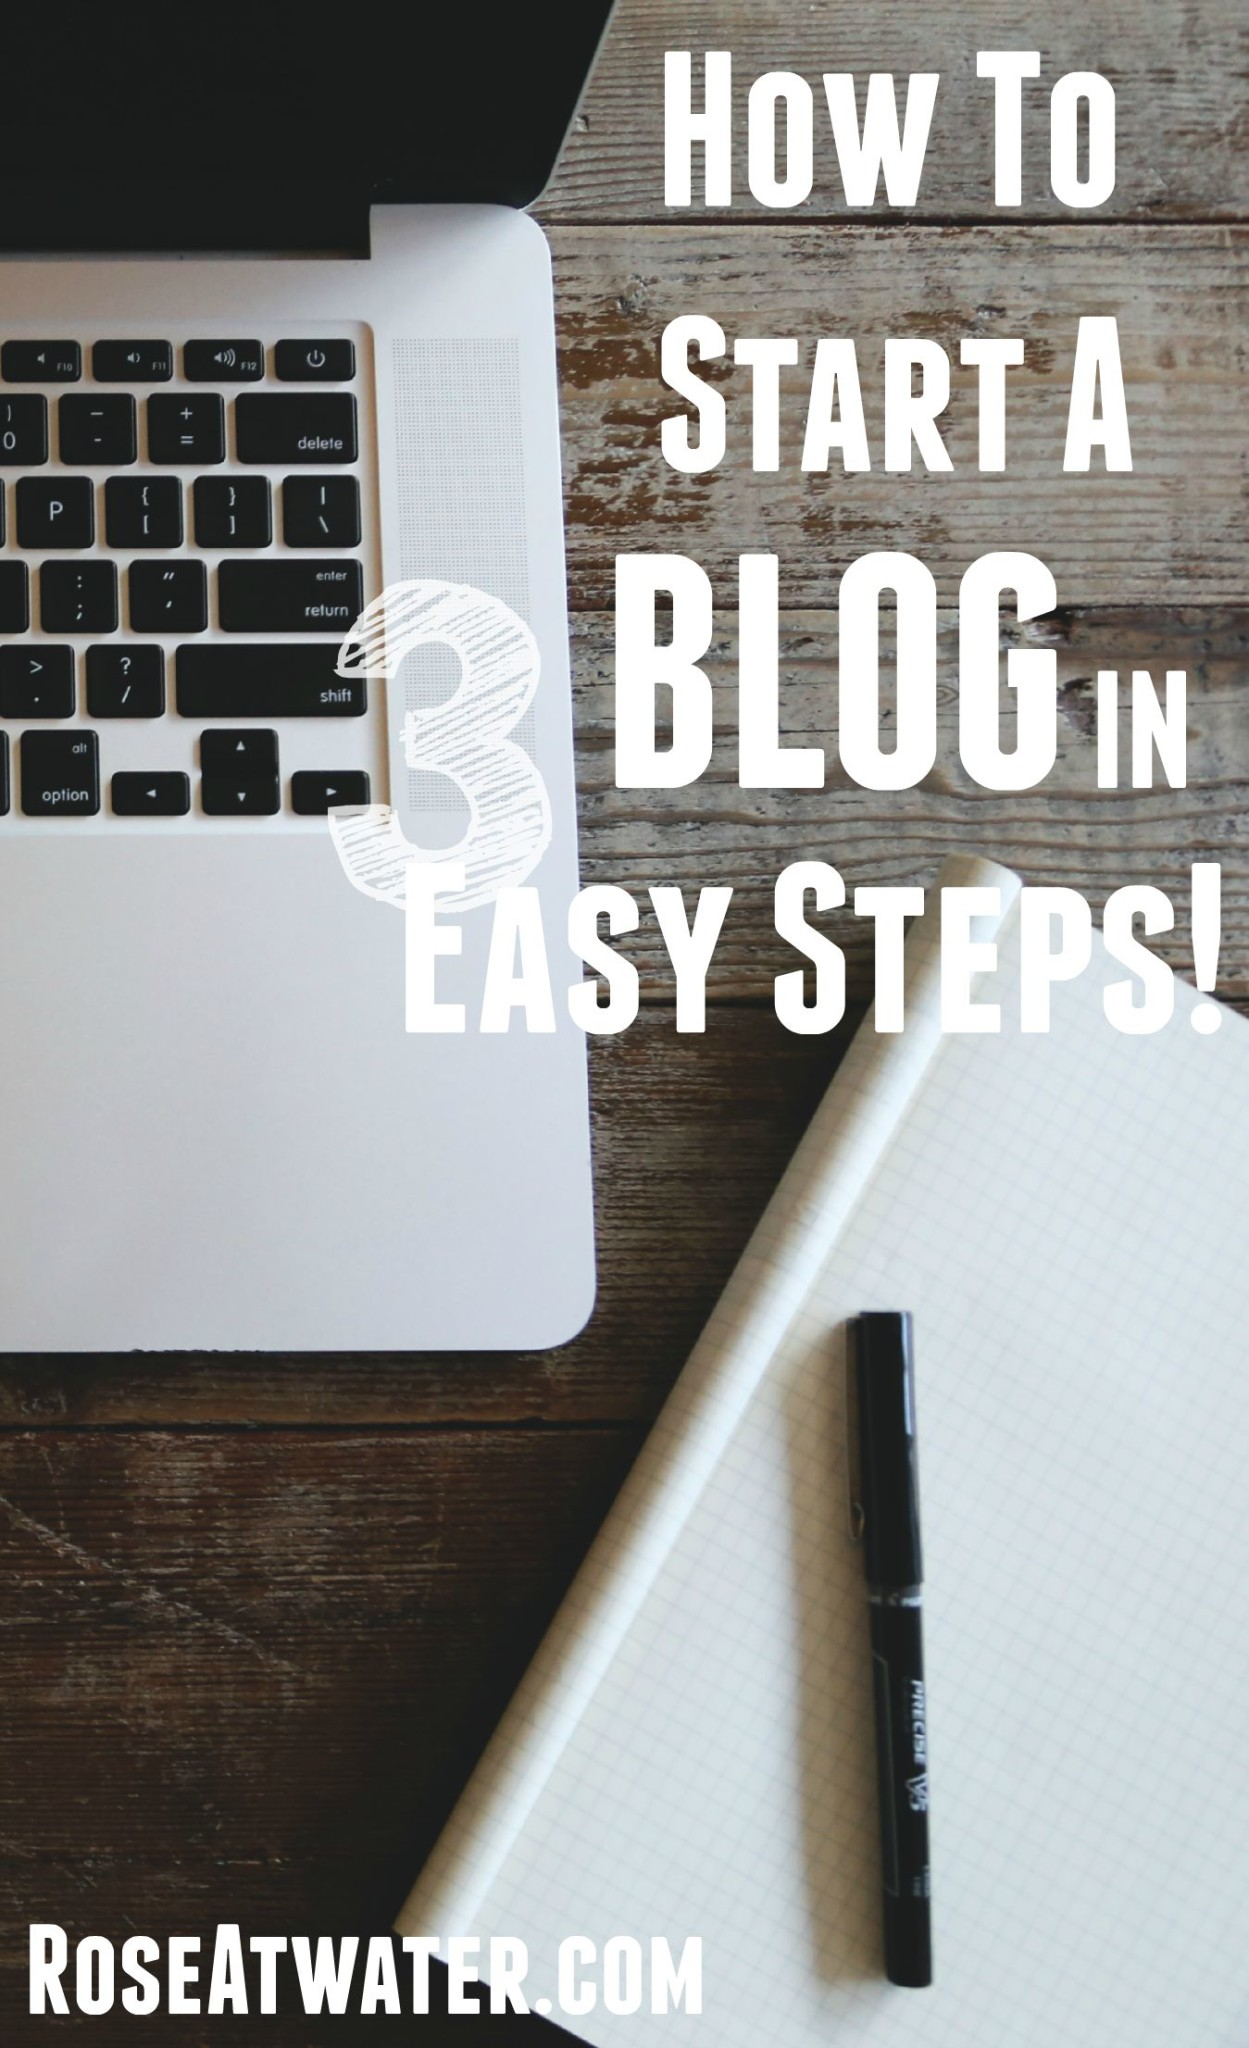 How to Start a Blog in 3 Easy Steps!